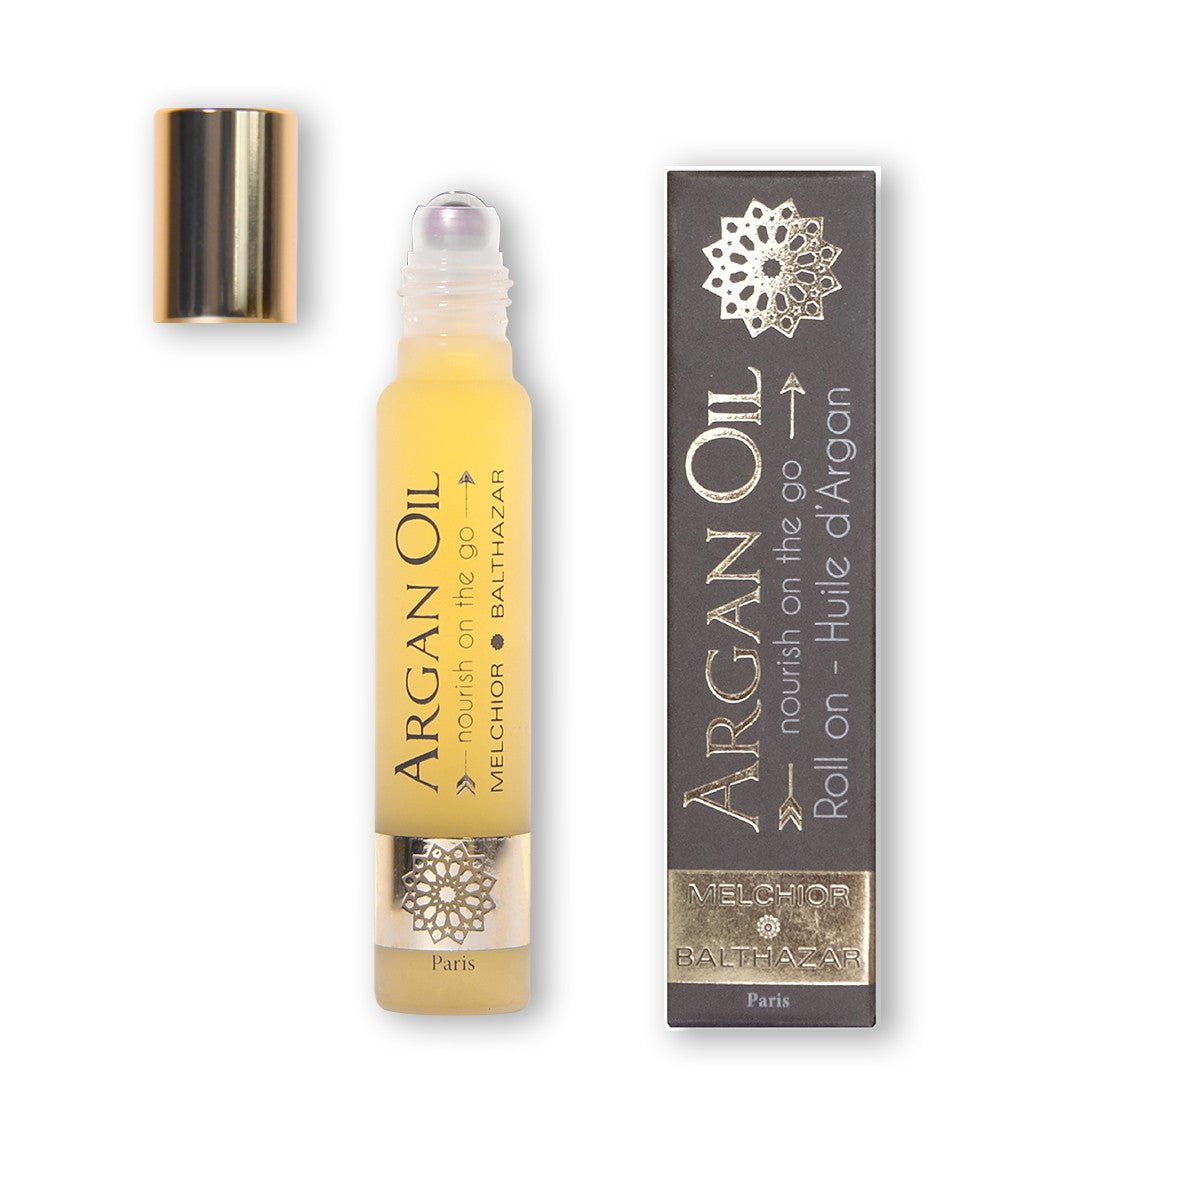 Roll-on - Melchior & Balthazar Argan Oil